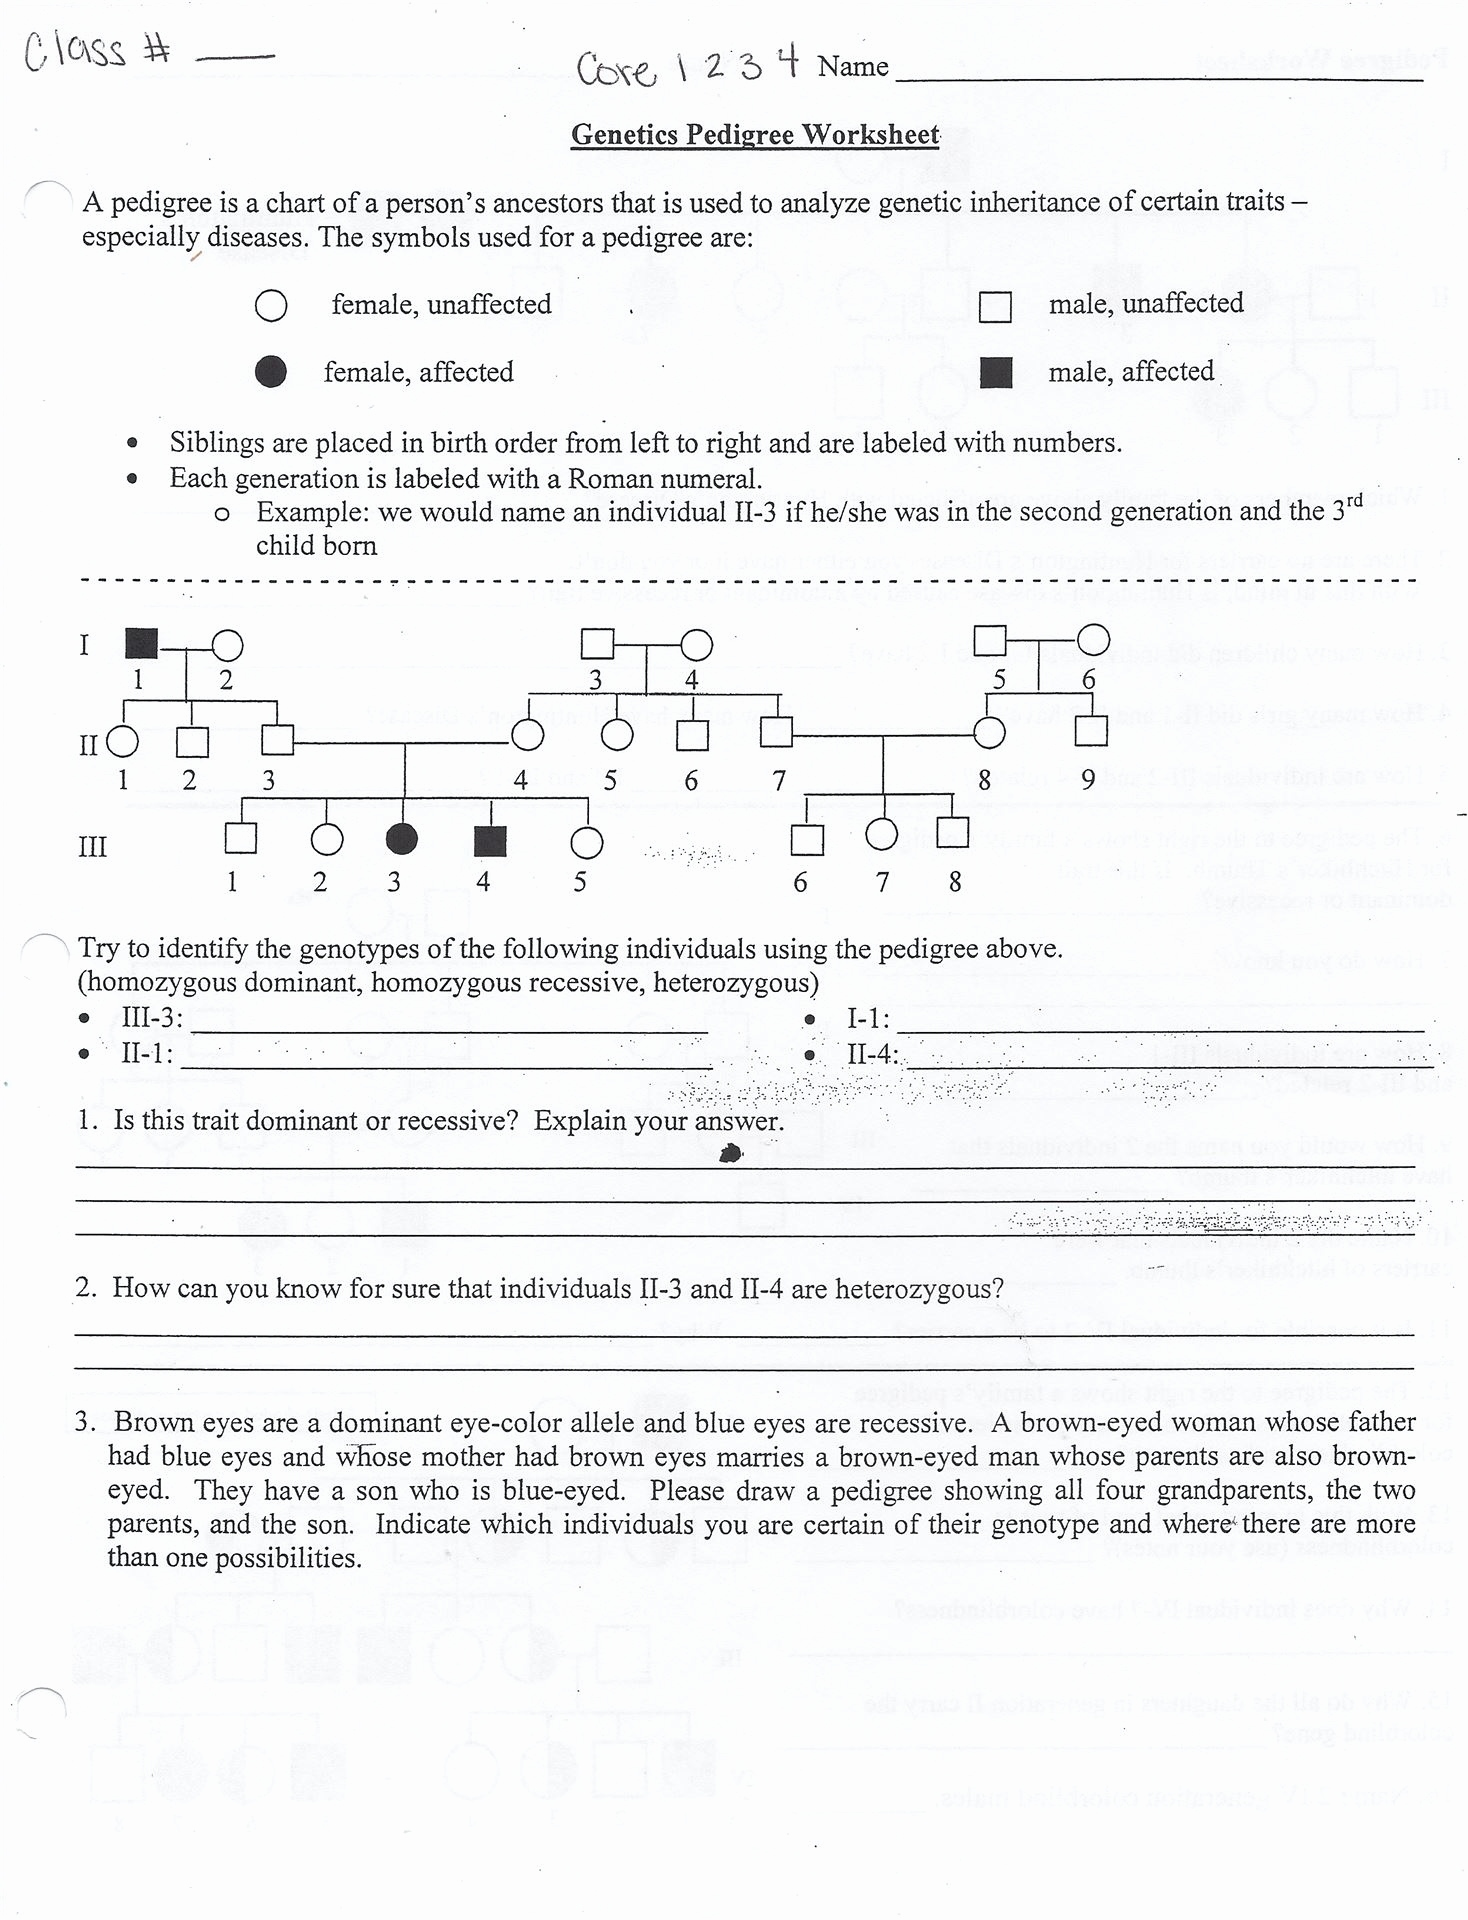 Pedigree Worksheet Side 2 Answers Key